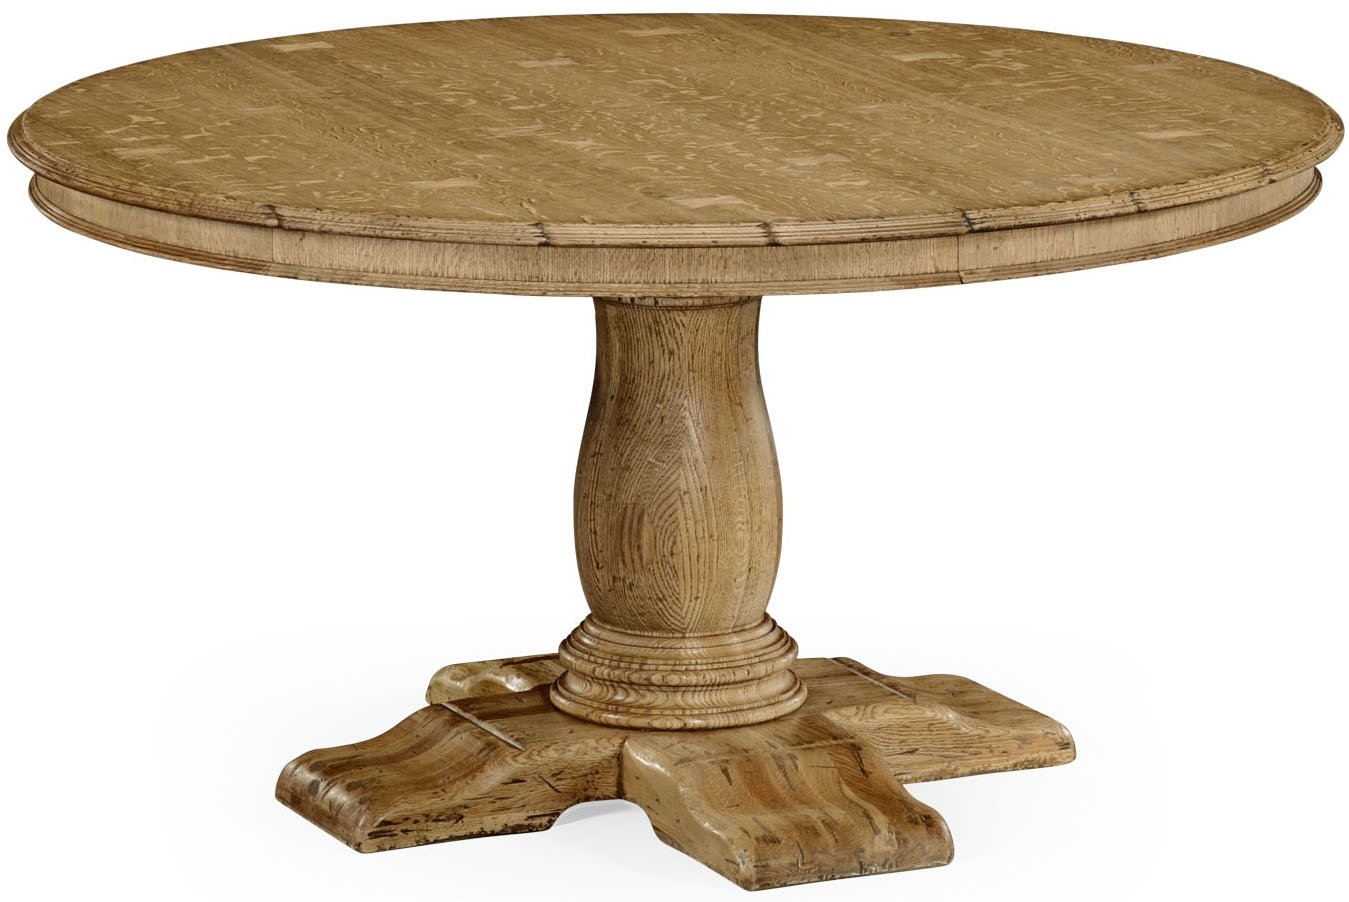 ... Shop by Room > DINING ROOM FURNITURE > French Country oak dining table